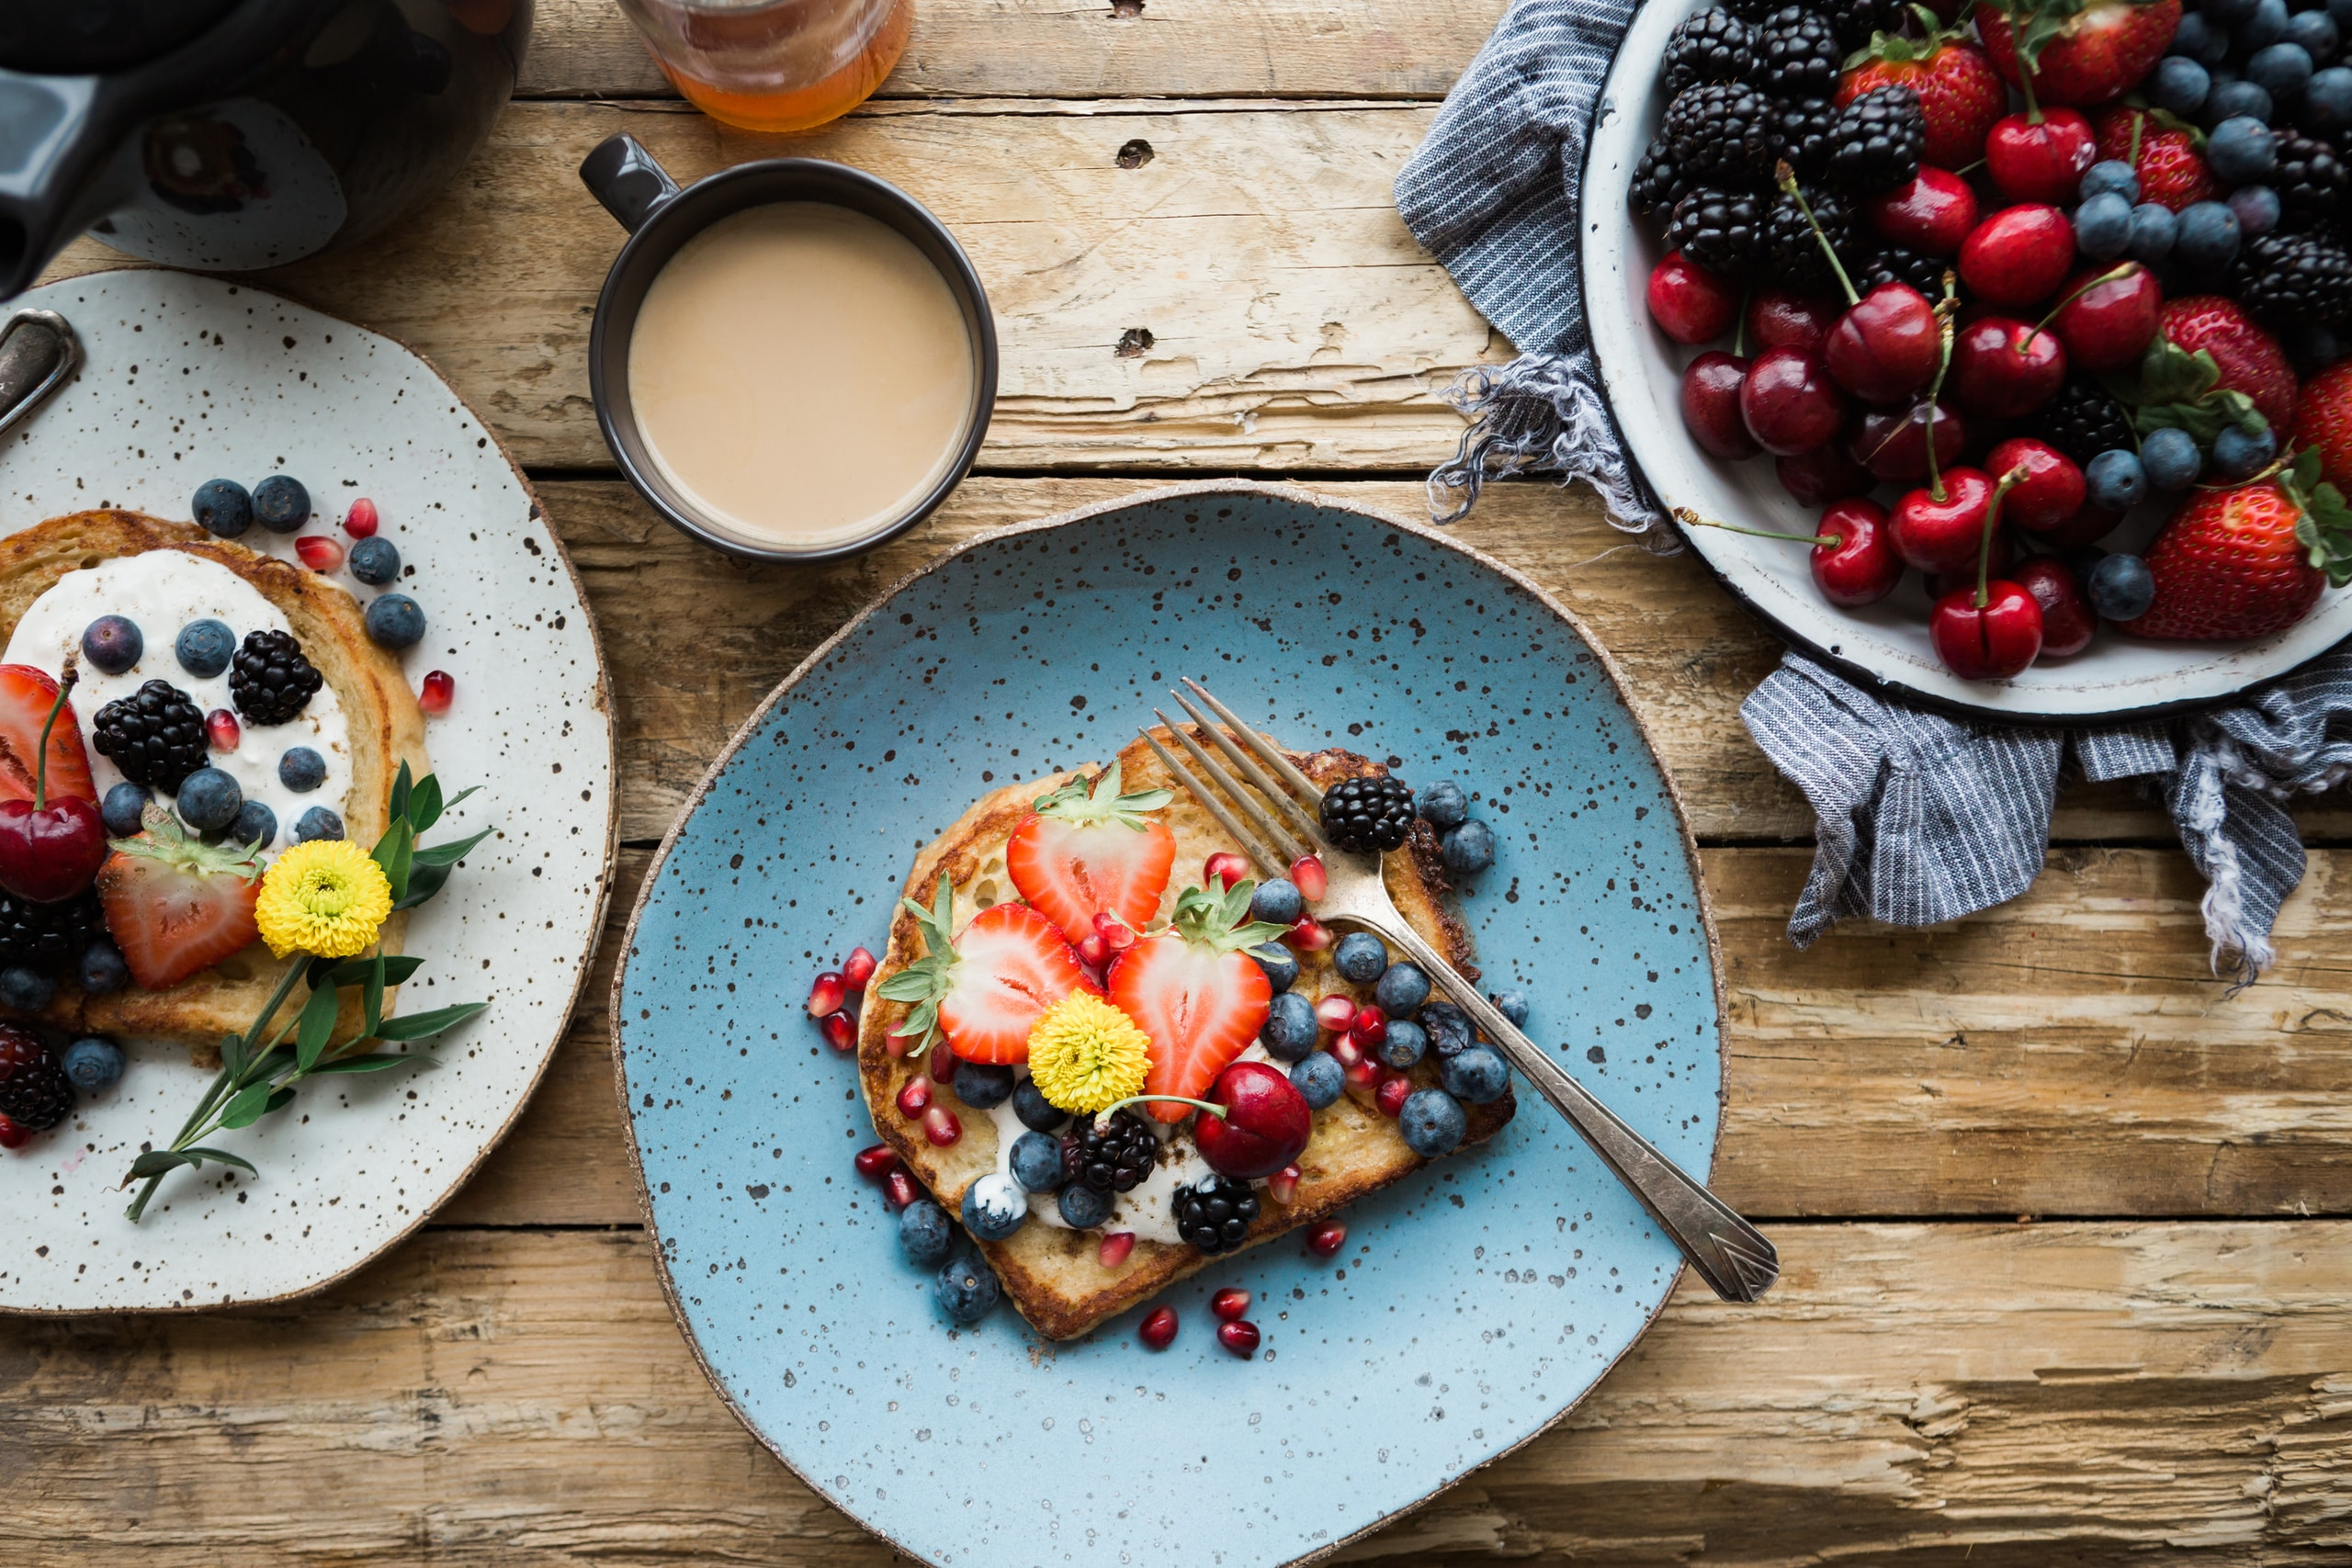 How Nutrition Improves Your Health and Well-Being